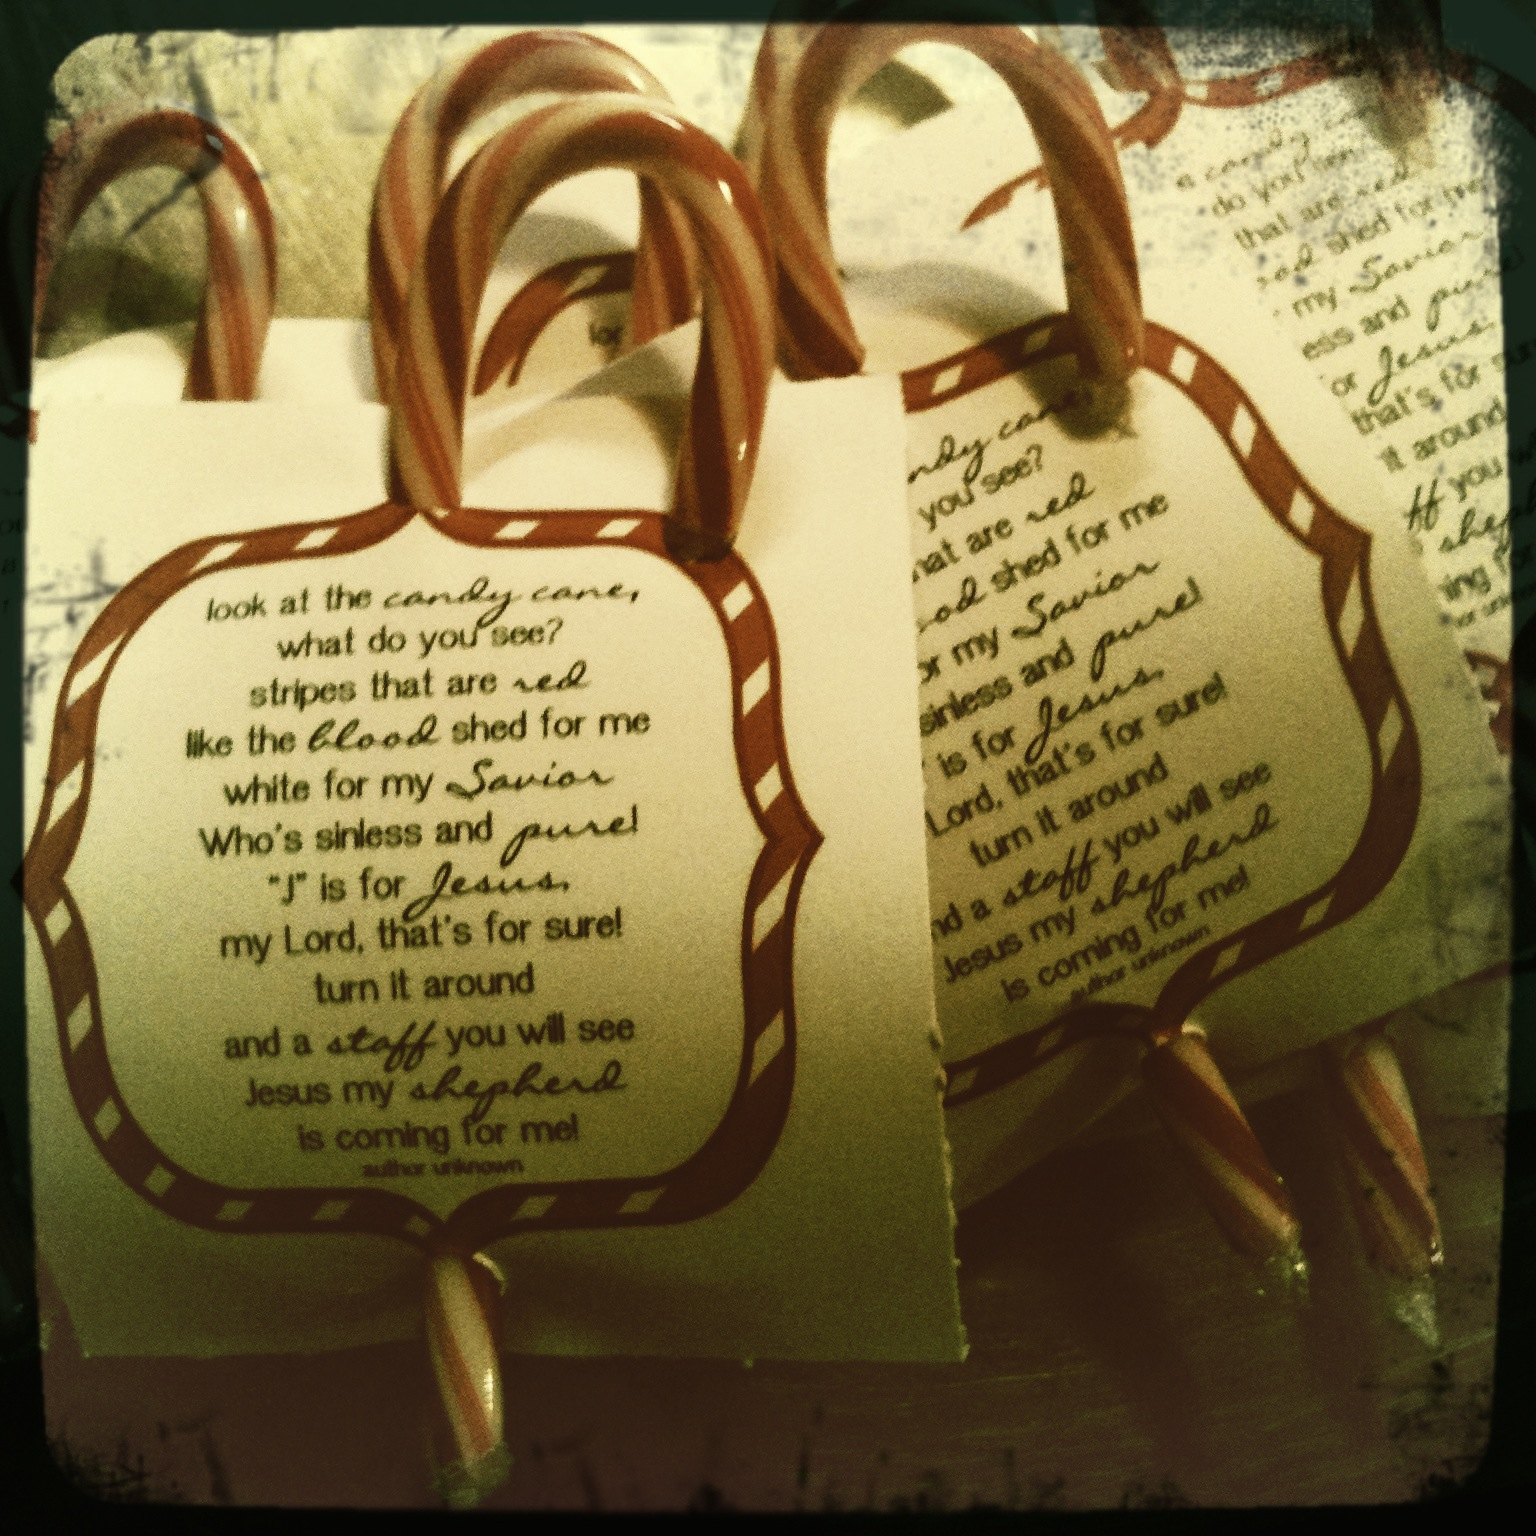 Circles of sunshine the candy cane poem diy friend or neighbor gift